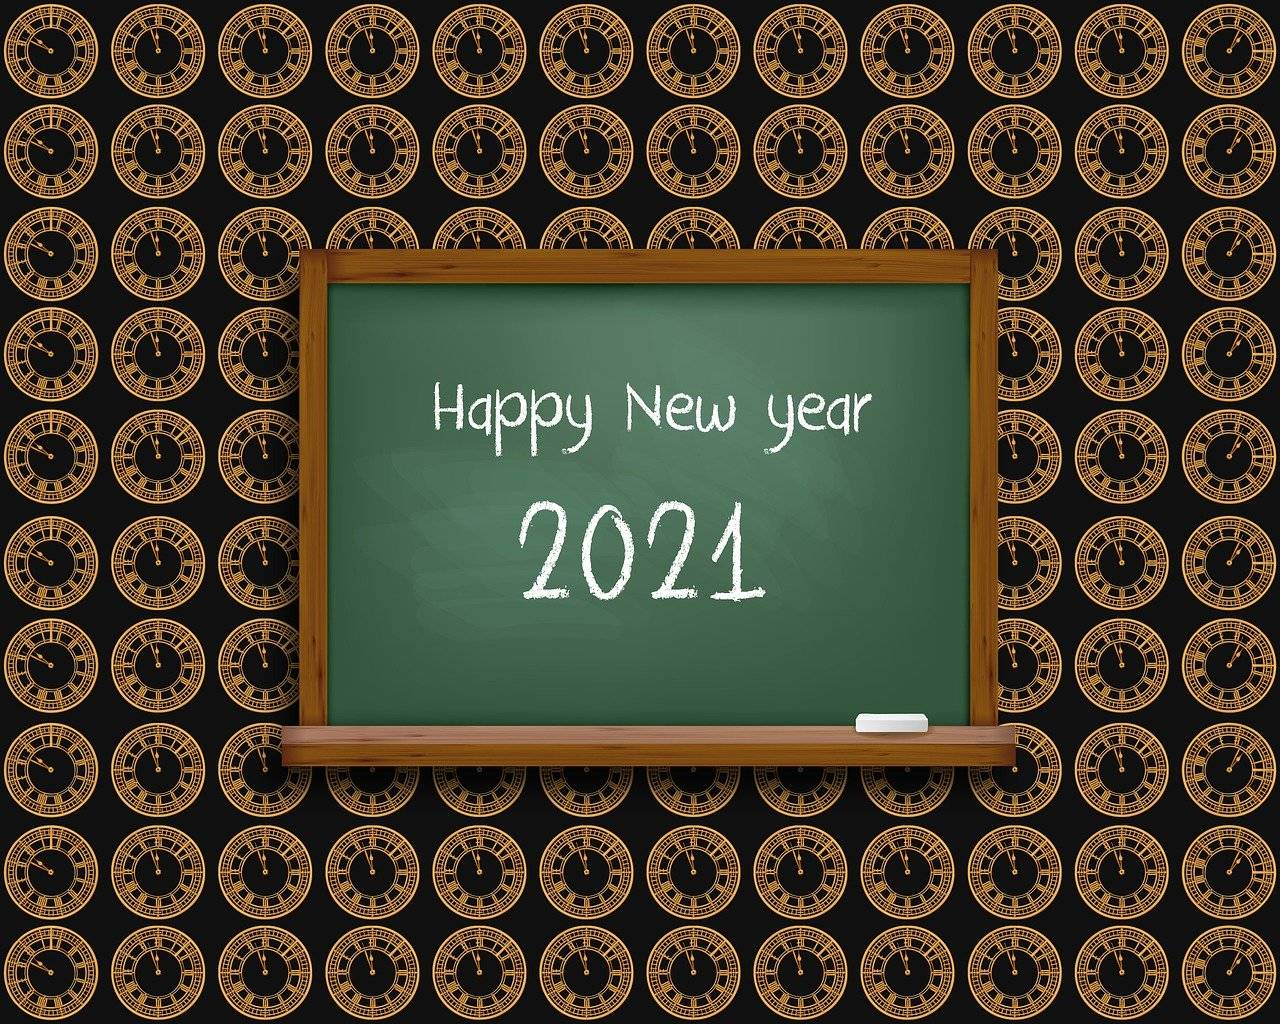 New Year's Eve - Happy New Year 2021 (18)